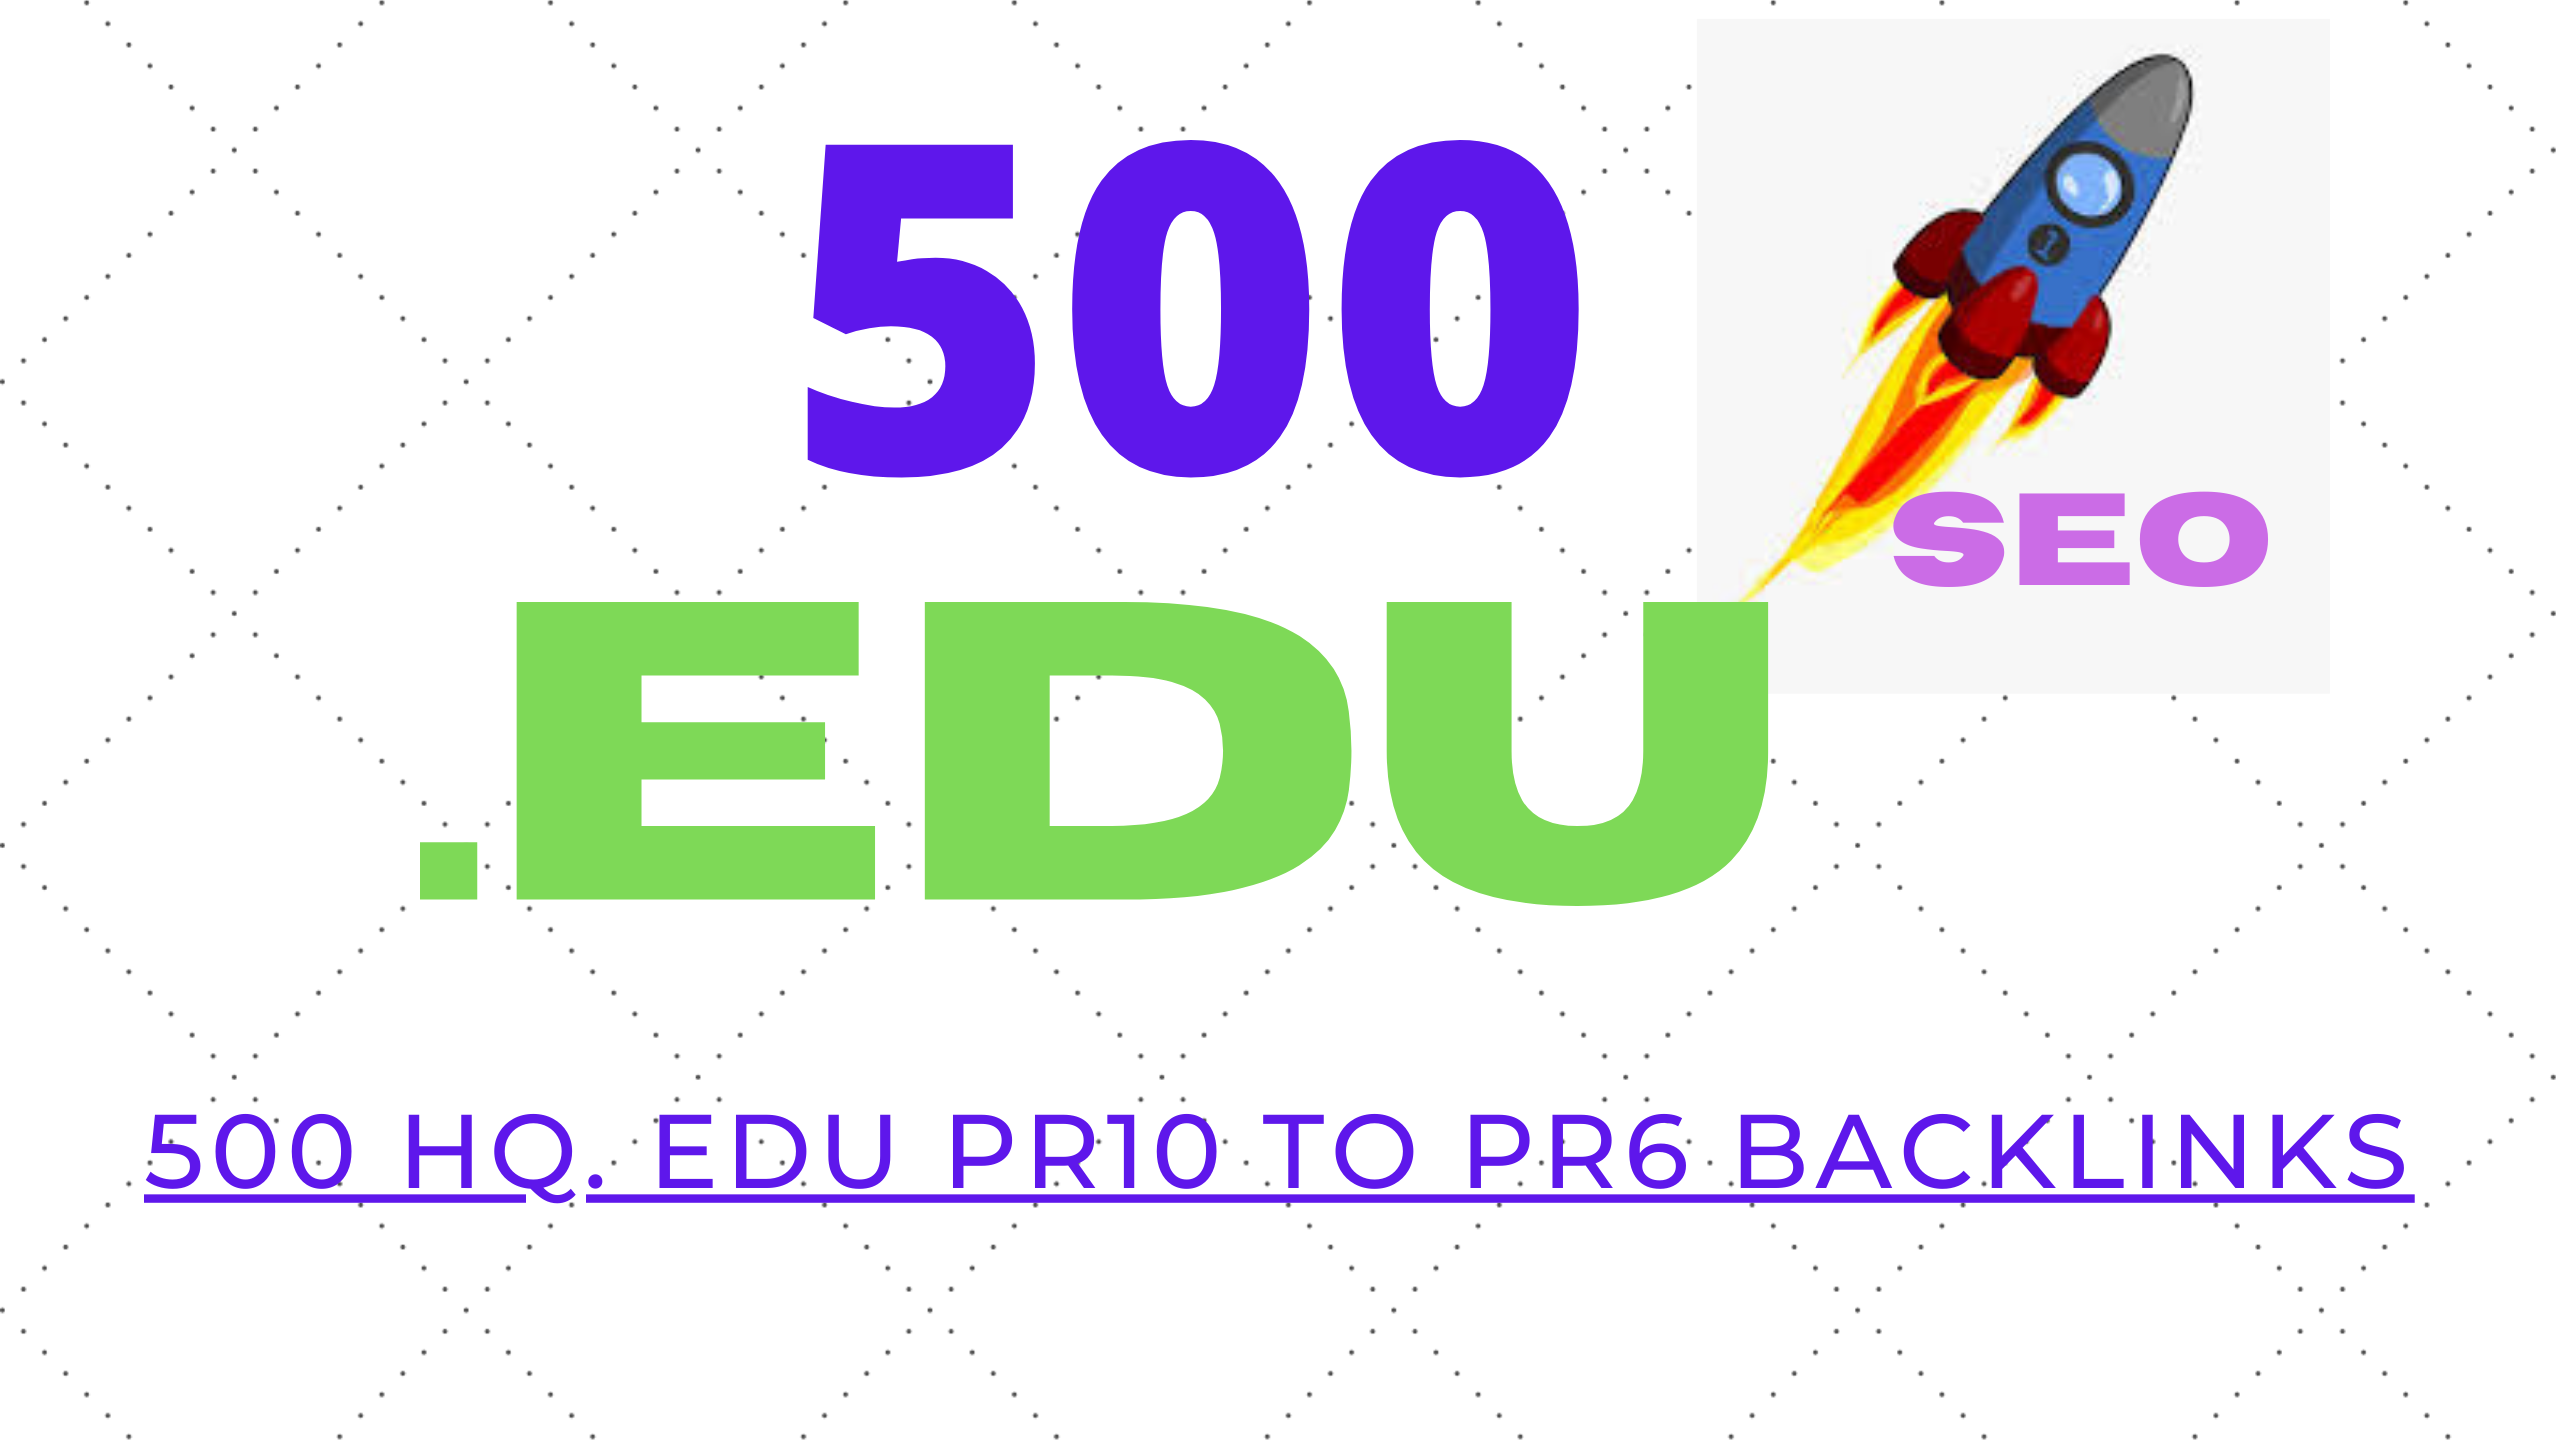 NOW Buy one Get One FREE 500 HQ. EDU PR10 to PR6 Backlinks Fantastic package